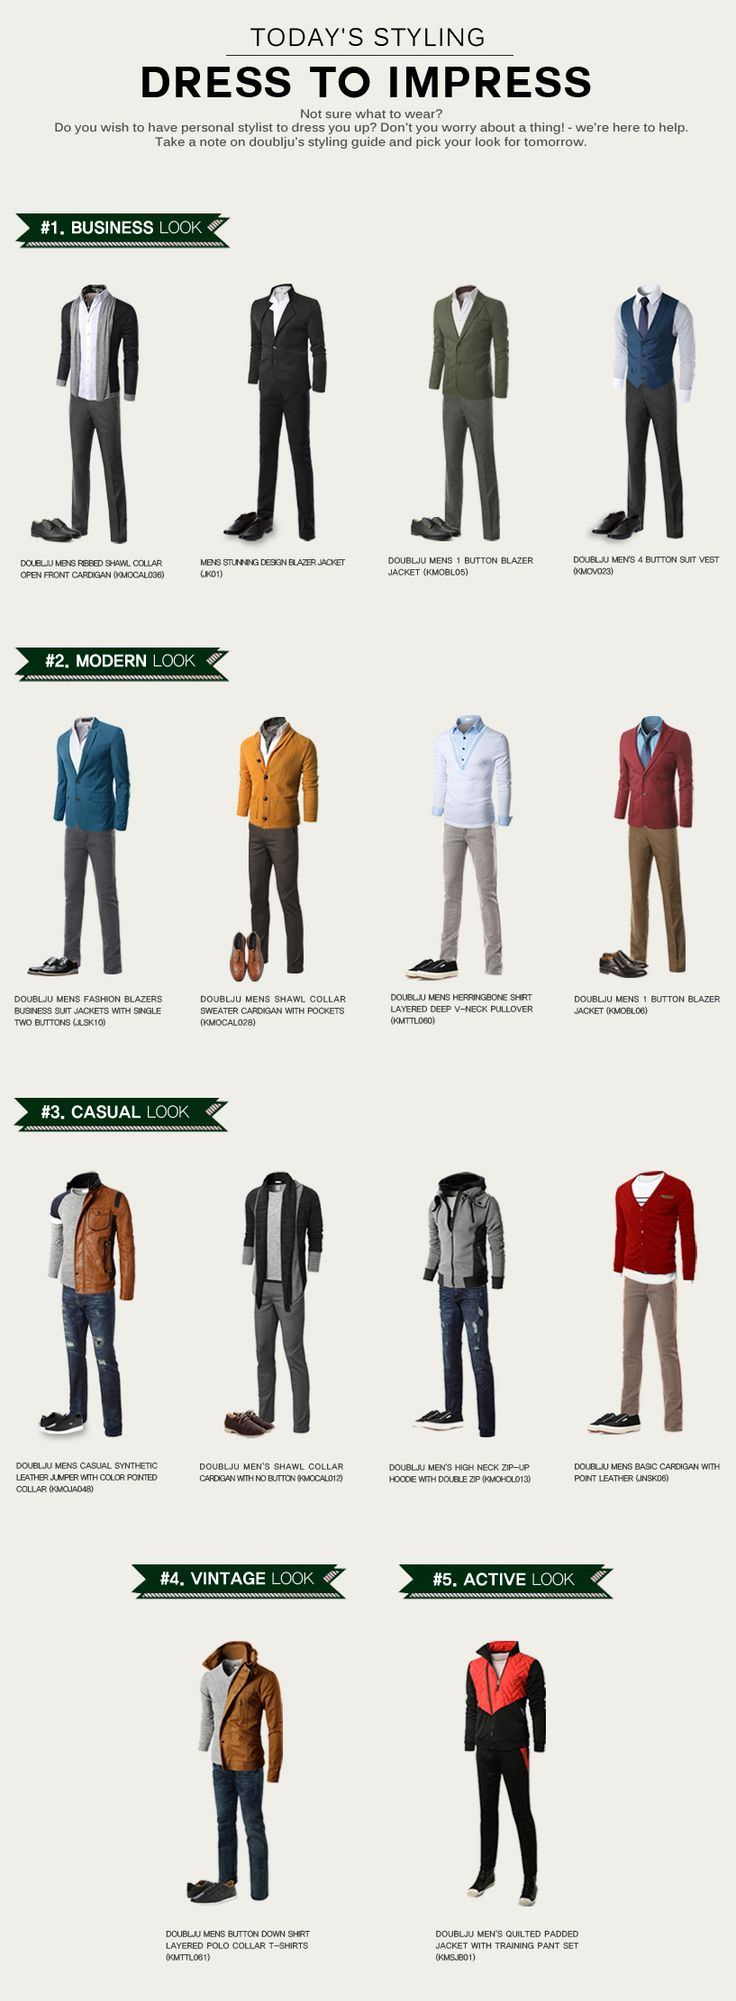 dress to impress, a guide to men's fashion